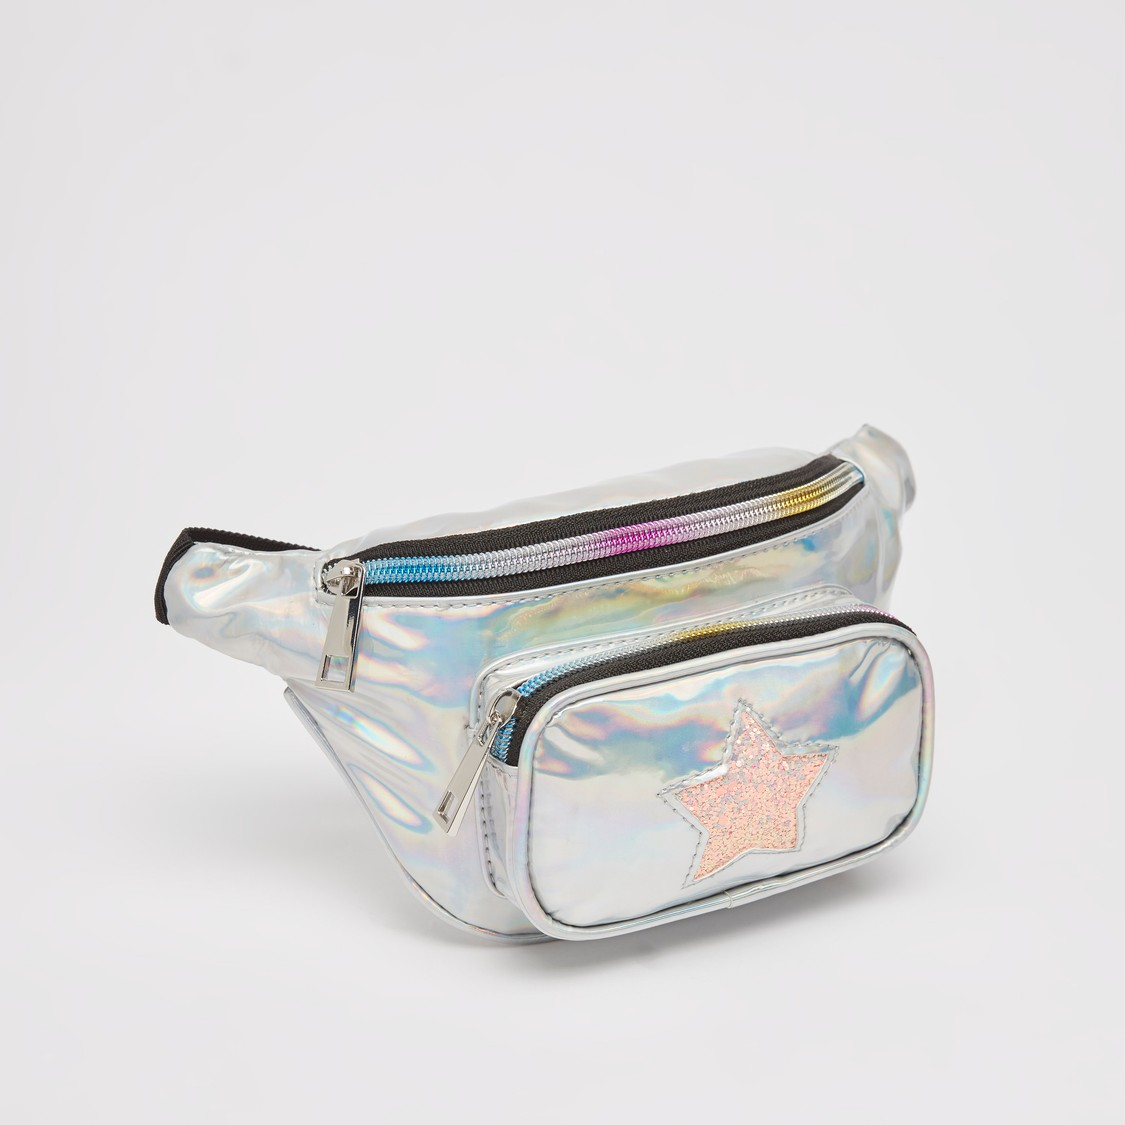 Sequin Detail Fanny Pack with Adjustable Strap and Zip Closure